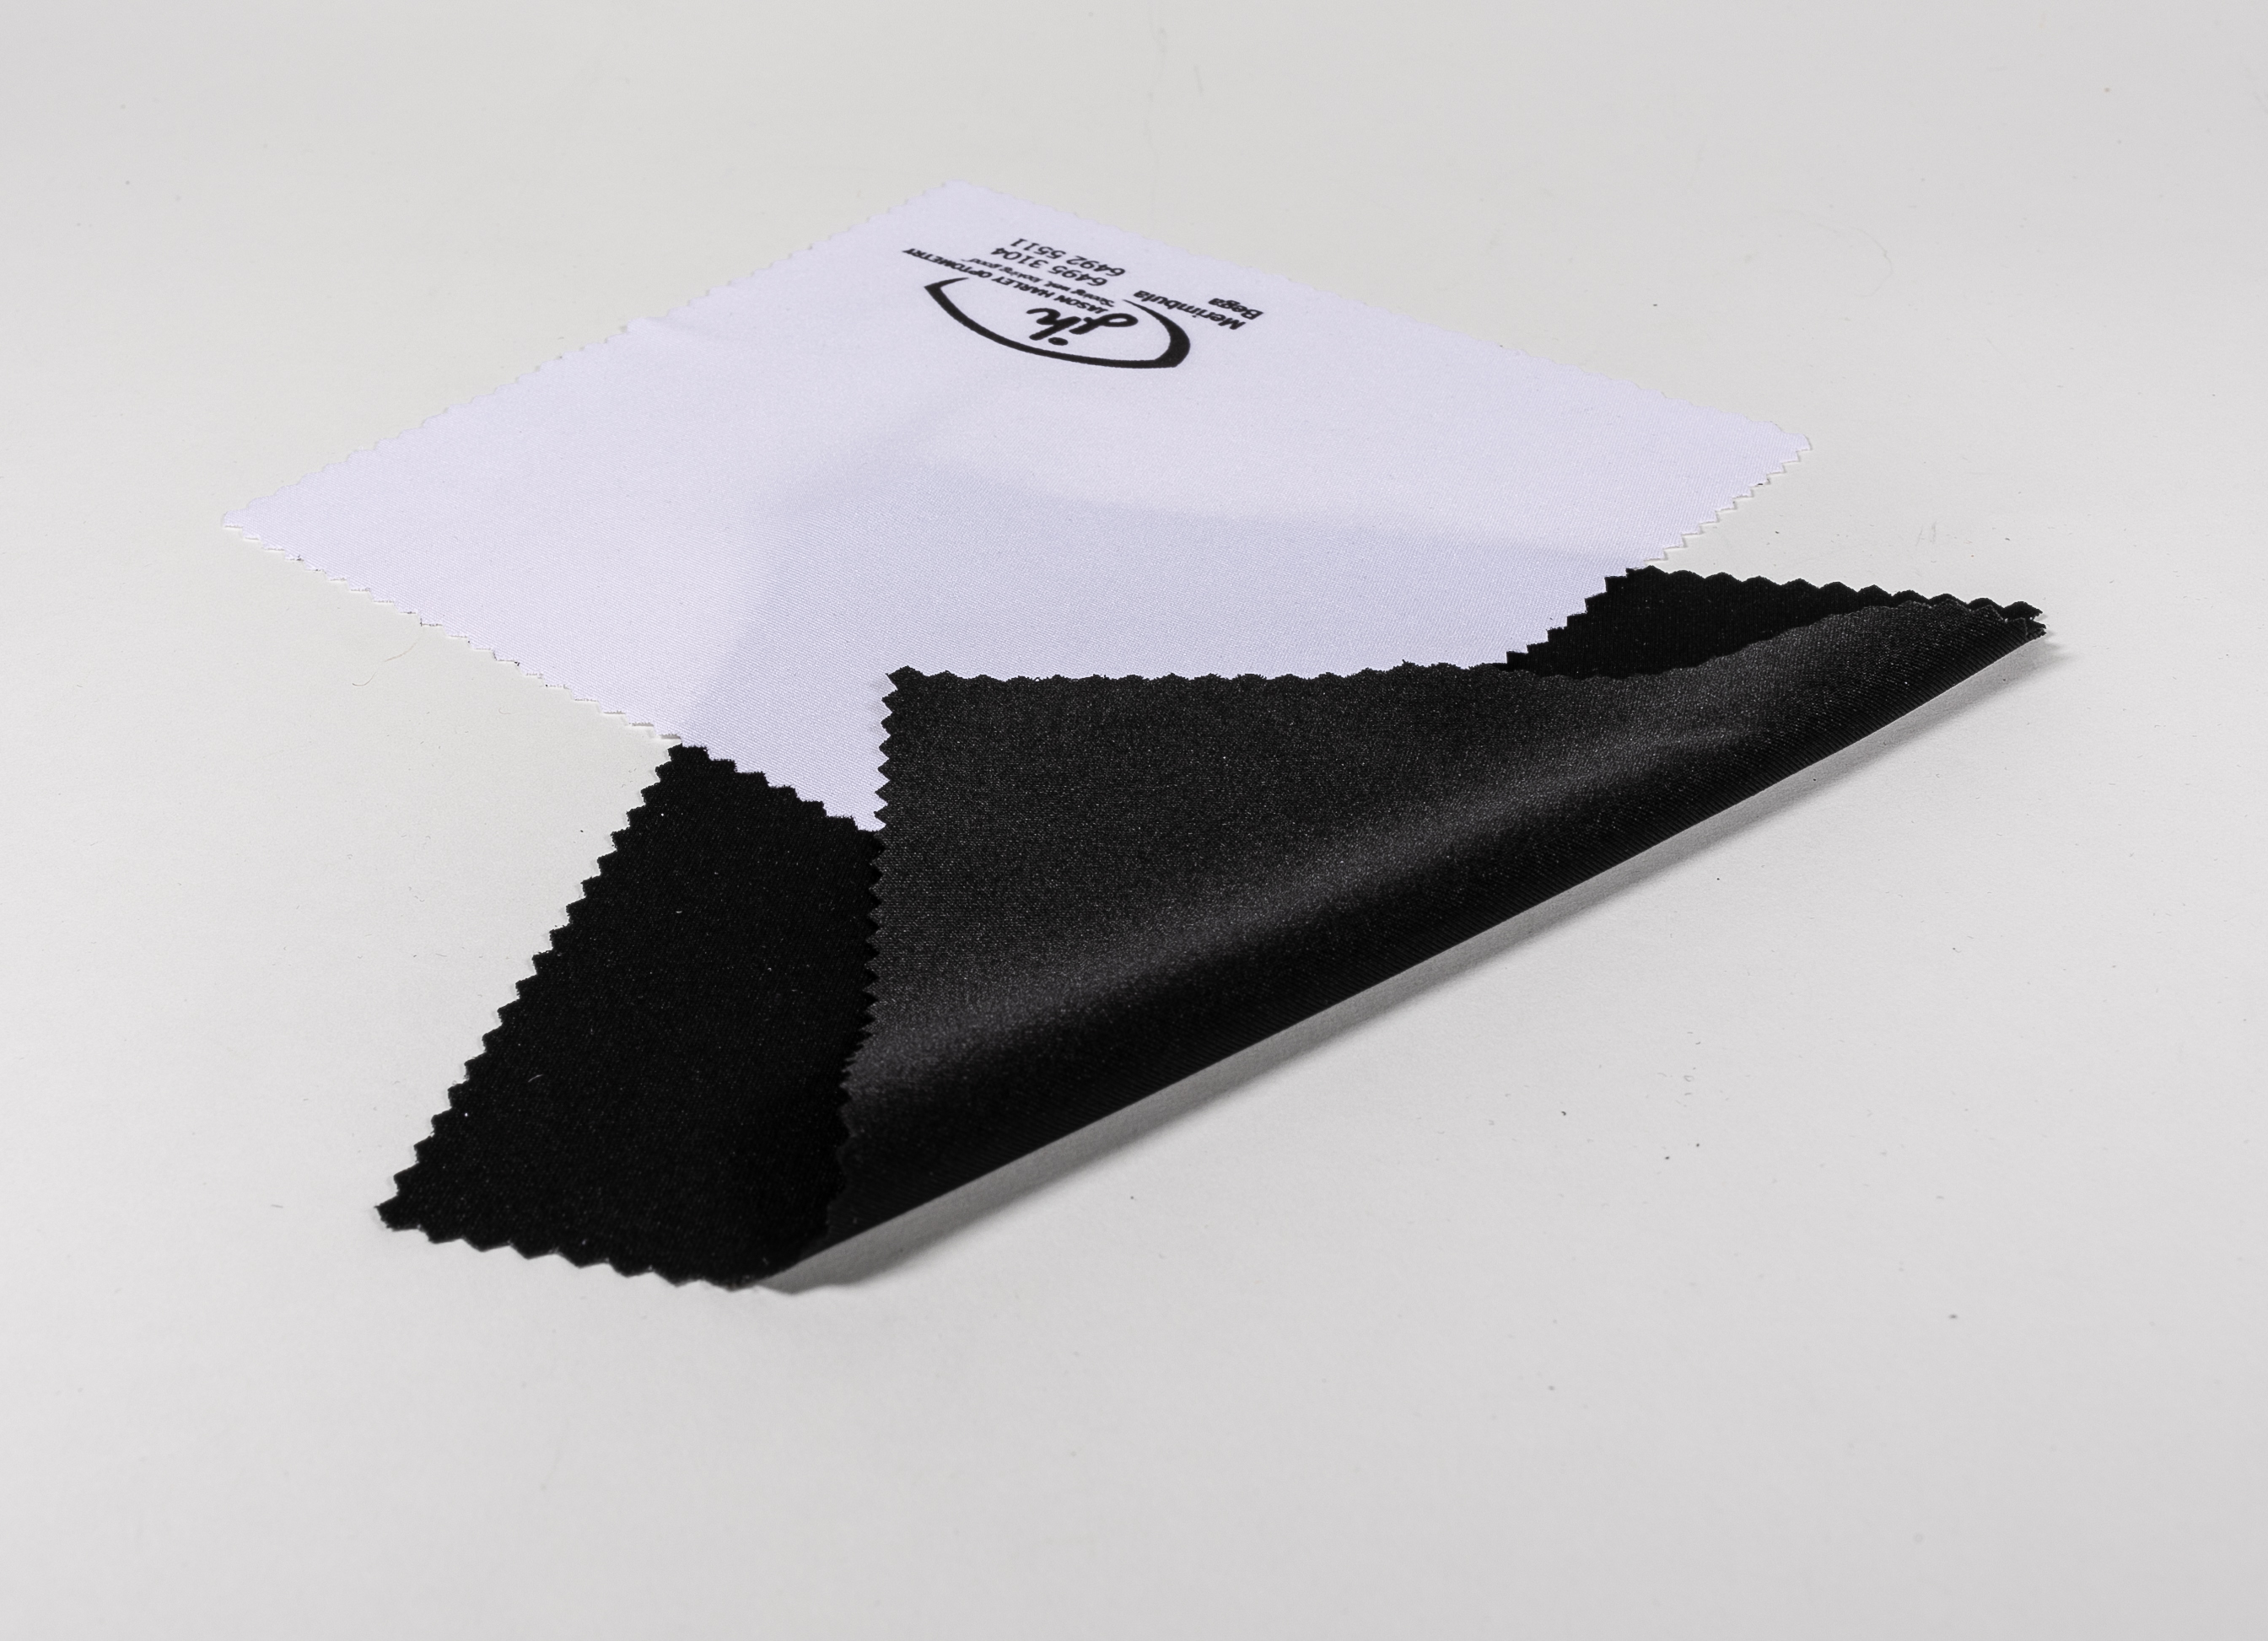 2021 Glasses Cloth, Printed with The LOGO, Two Colors of Wipe Cloth